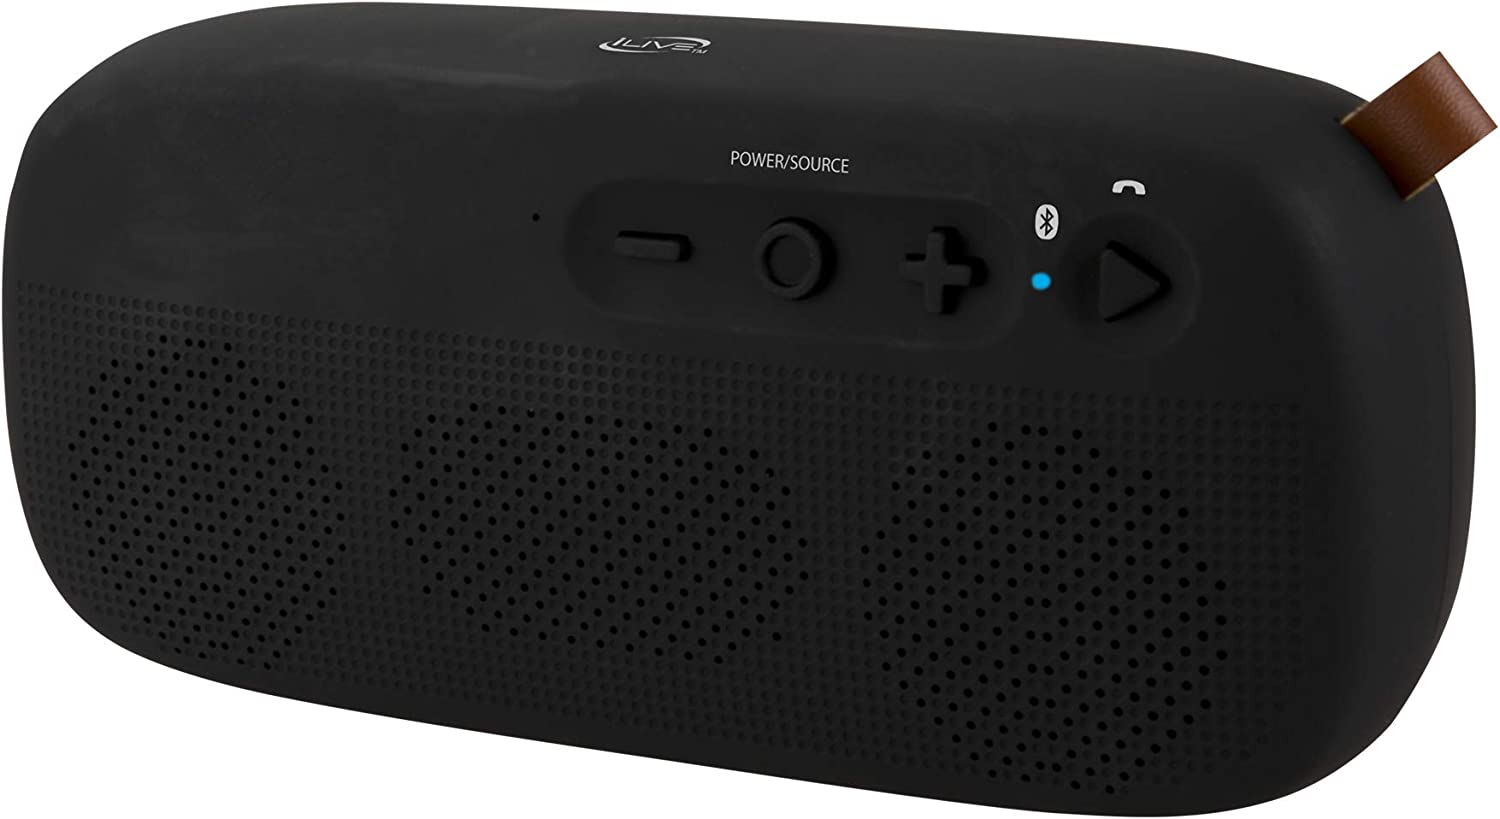 Ilive Water Resistant Wireless Speaker 8 27 X 1 8 X 3 82 Inches Built In Rechargeable Battery Black Isbw249b Home Audio Theater Amazon Com